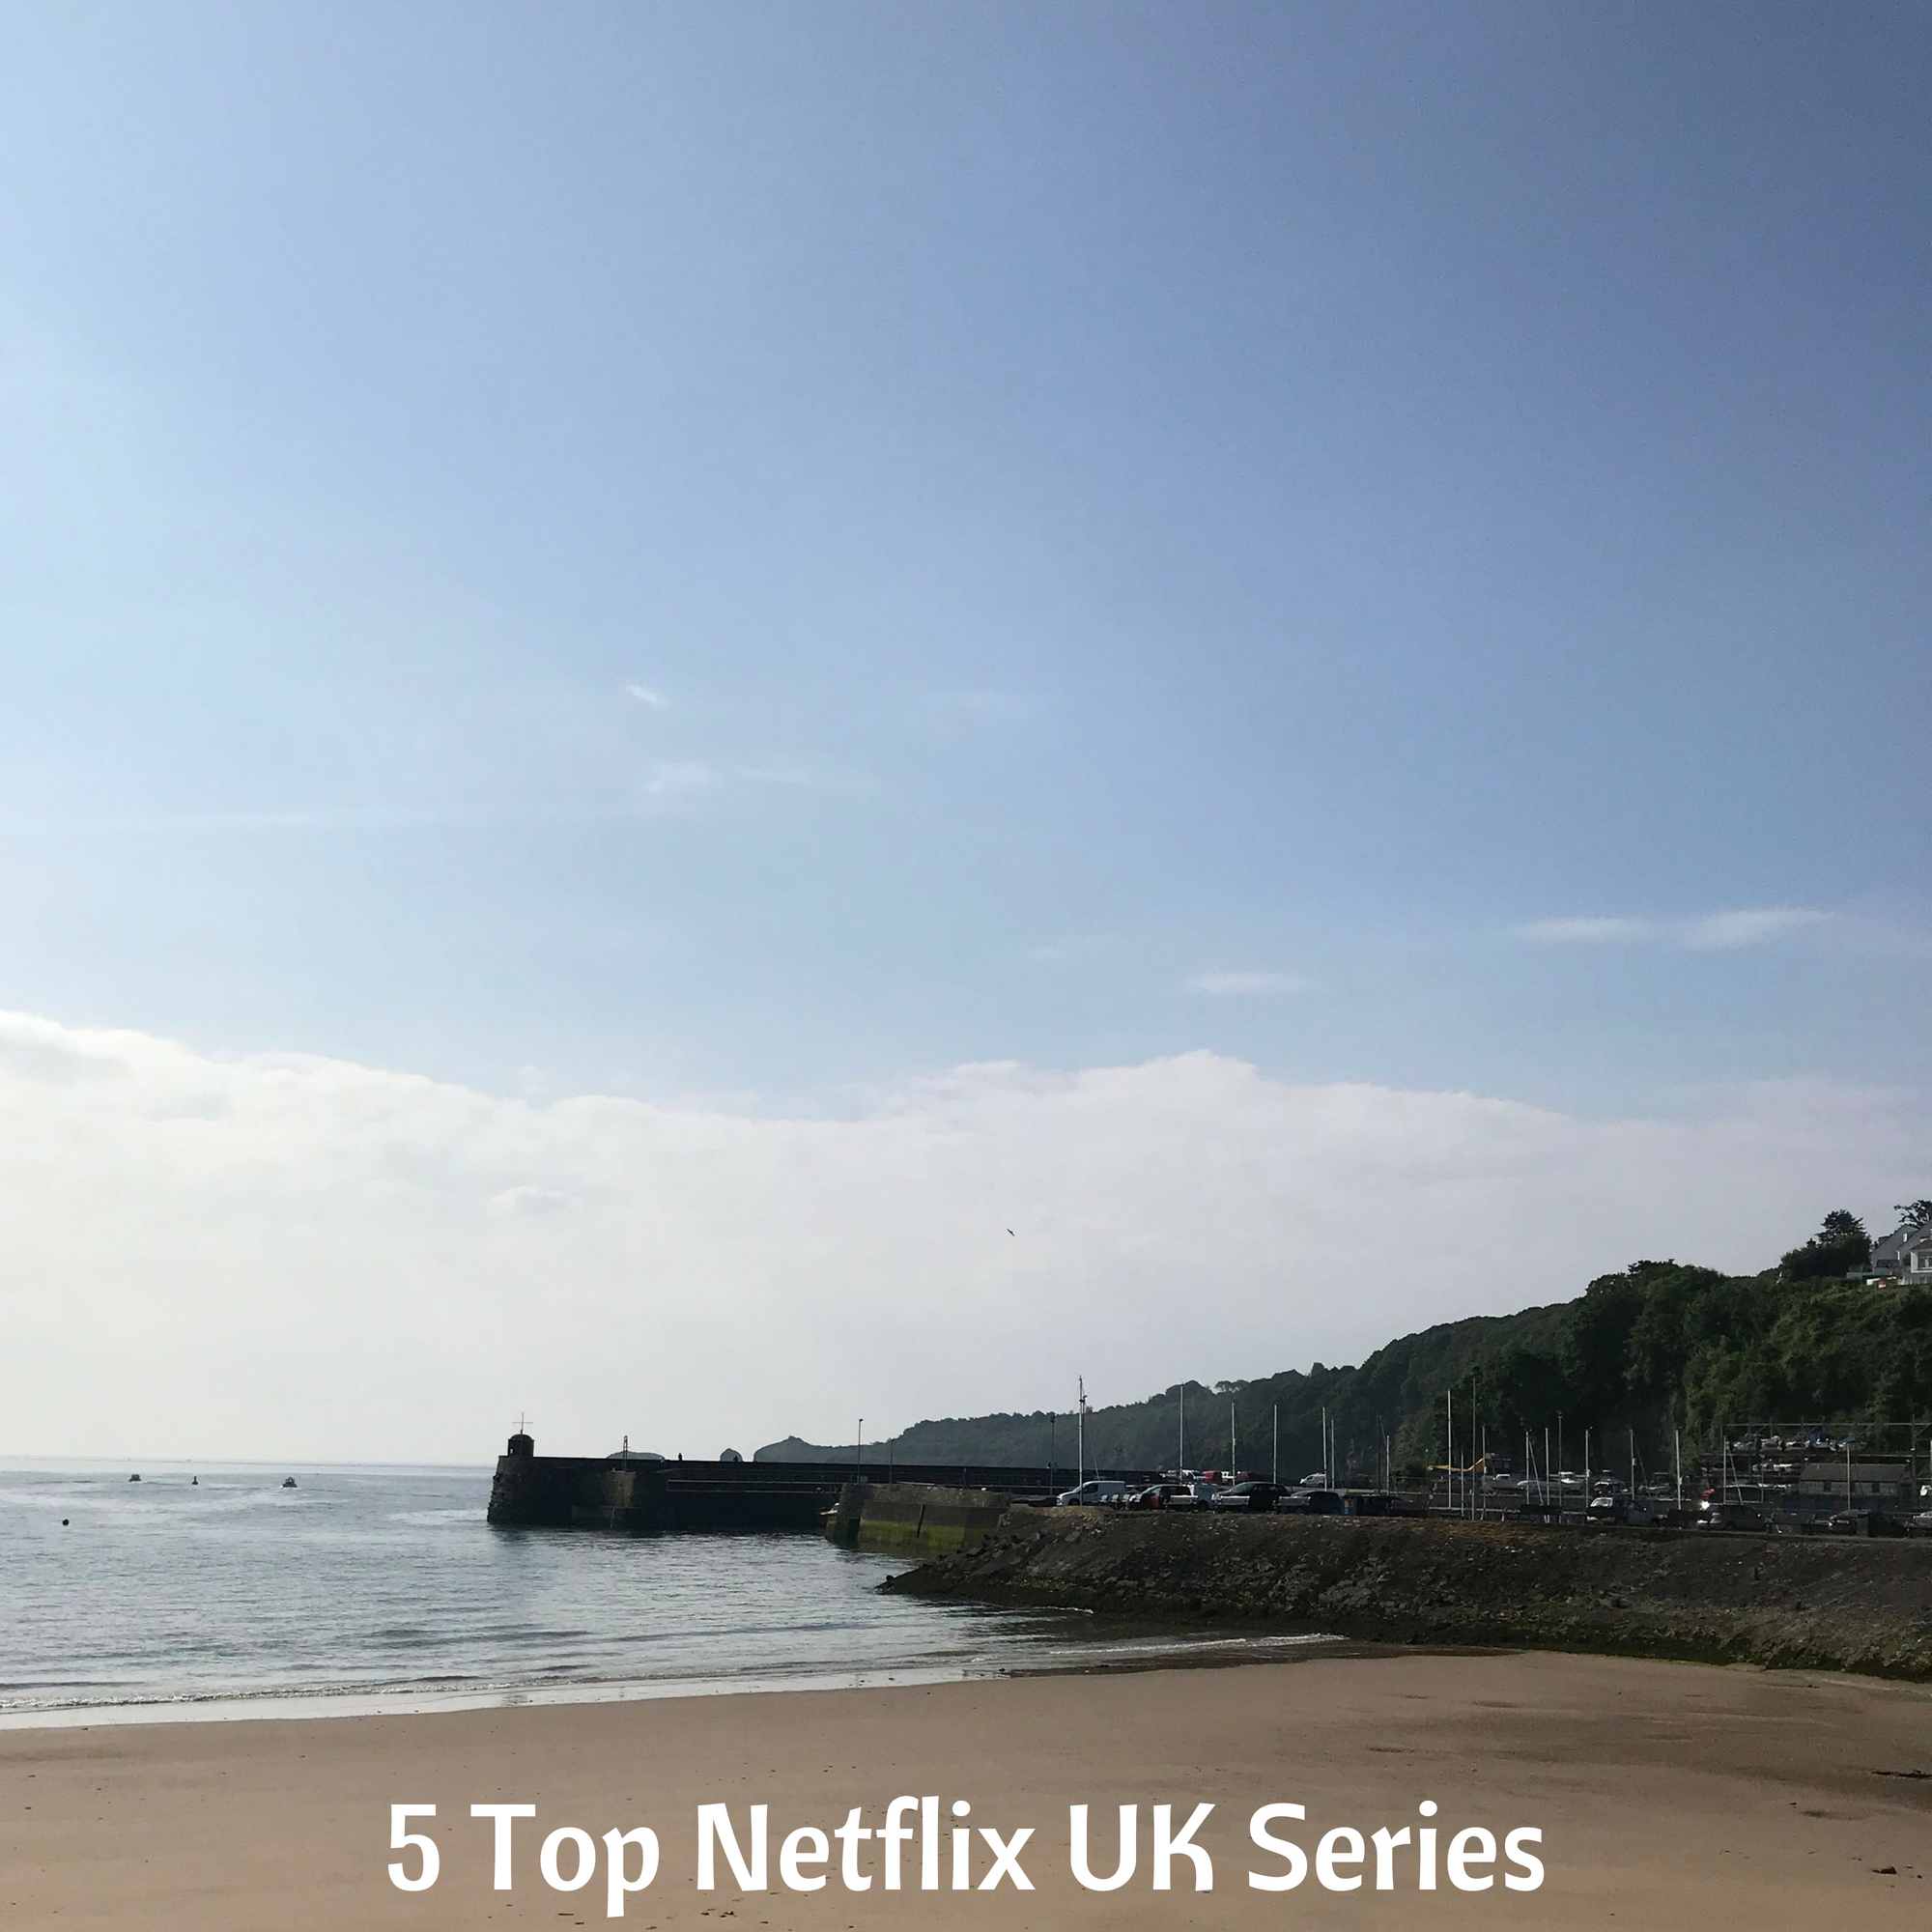 5 Top Netflix UK Series